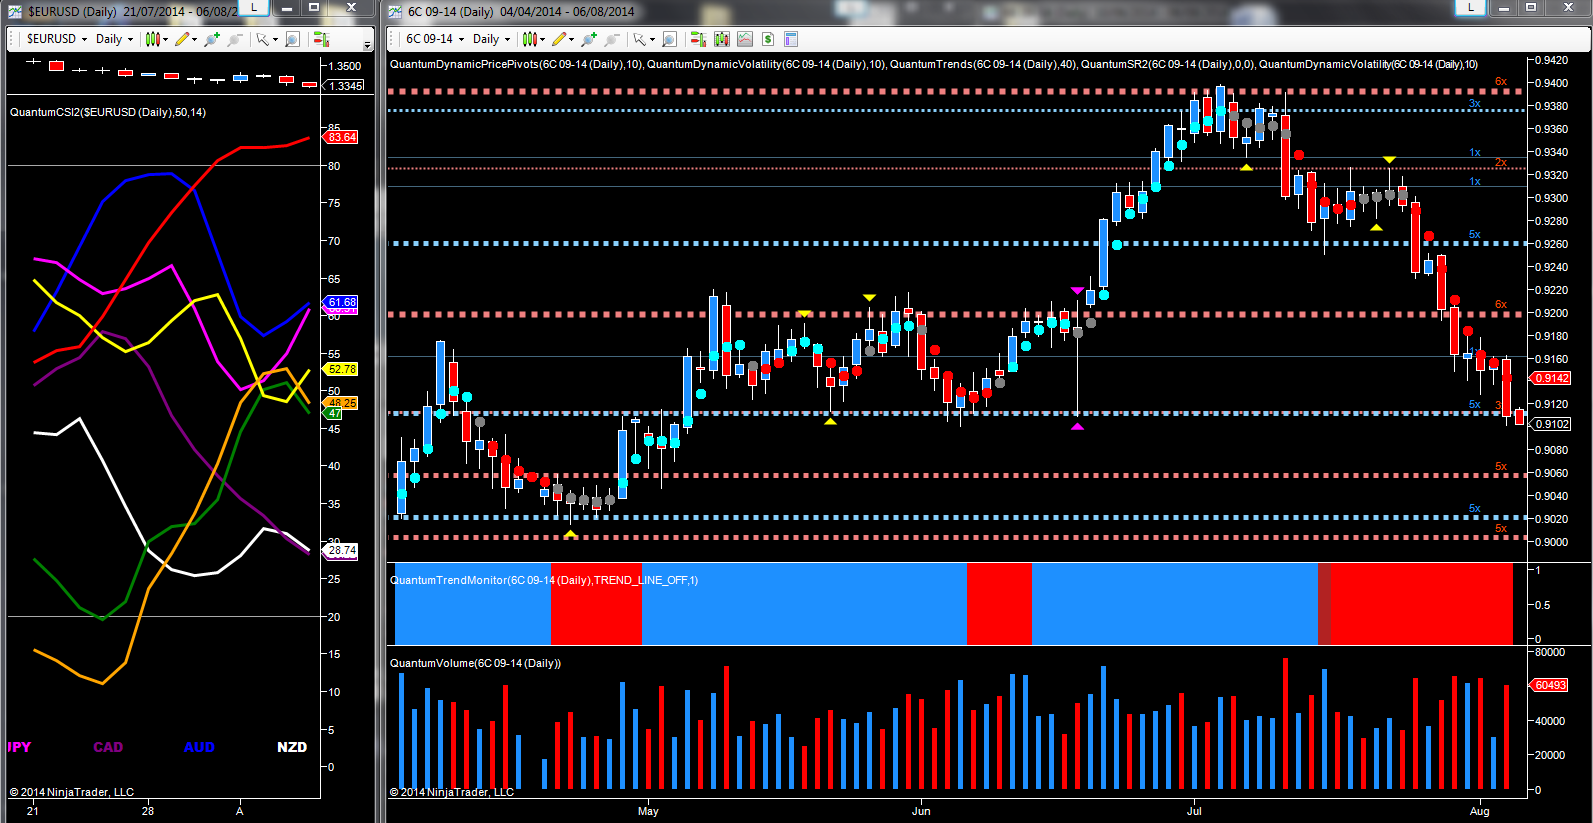 September future - CAD/USD daily chart